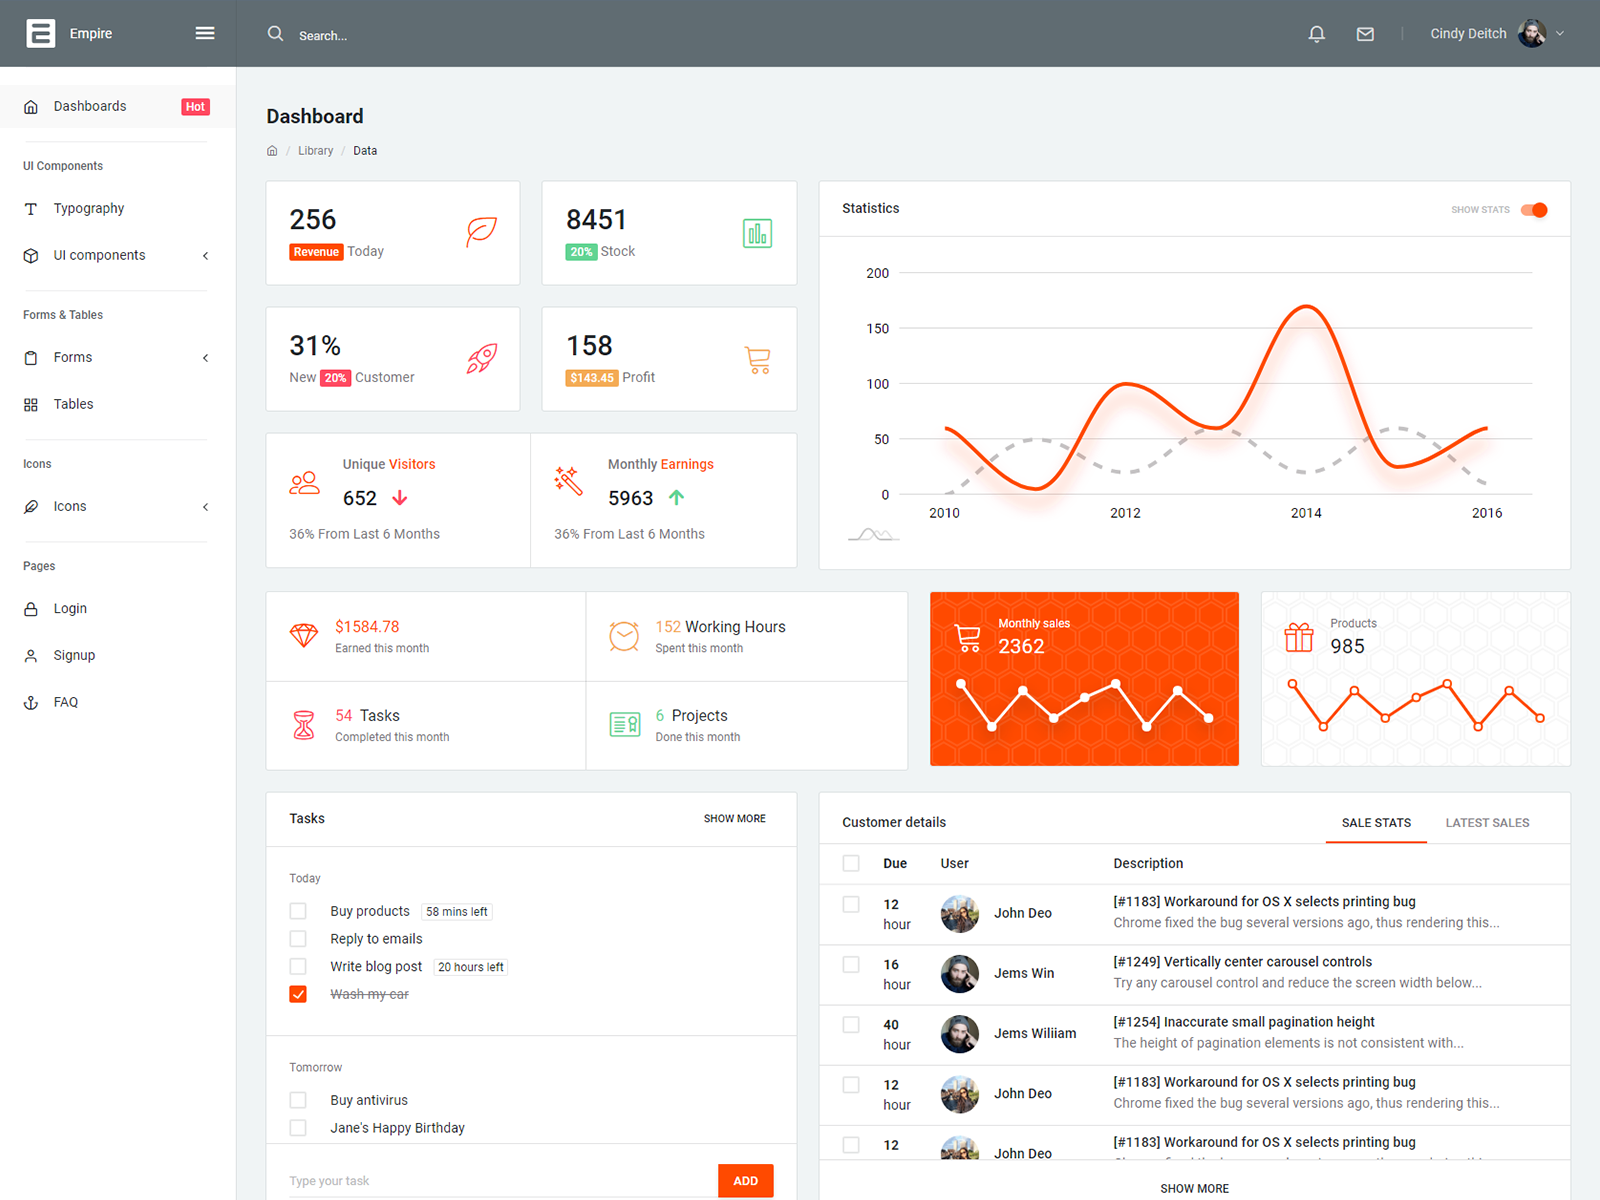 Empire Bootstrap Admin Template cover image